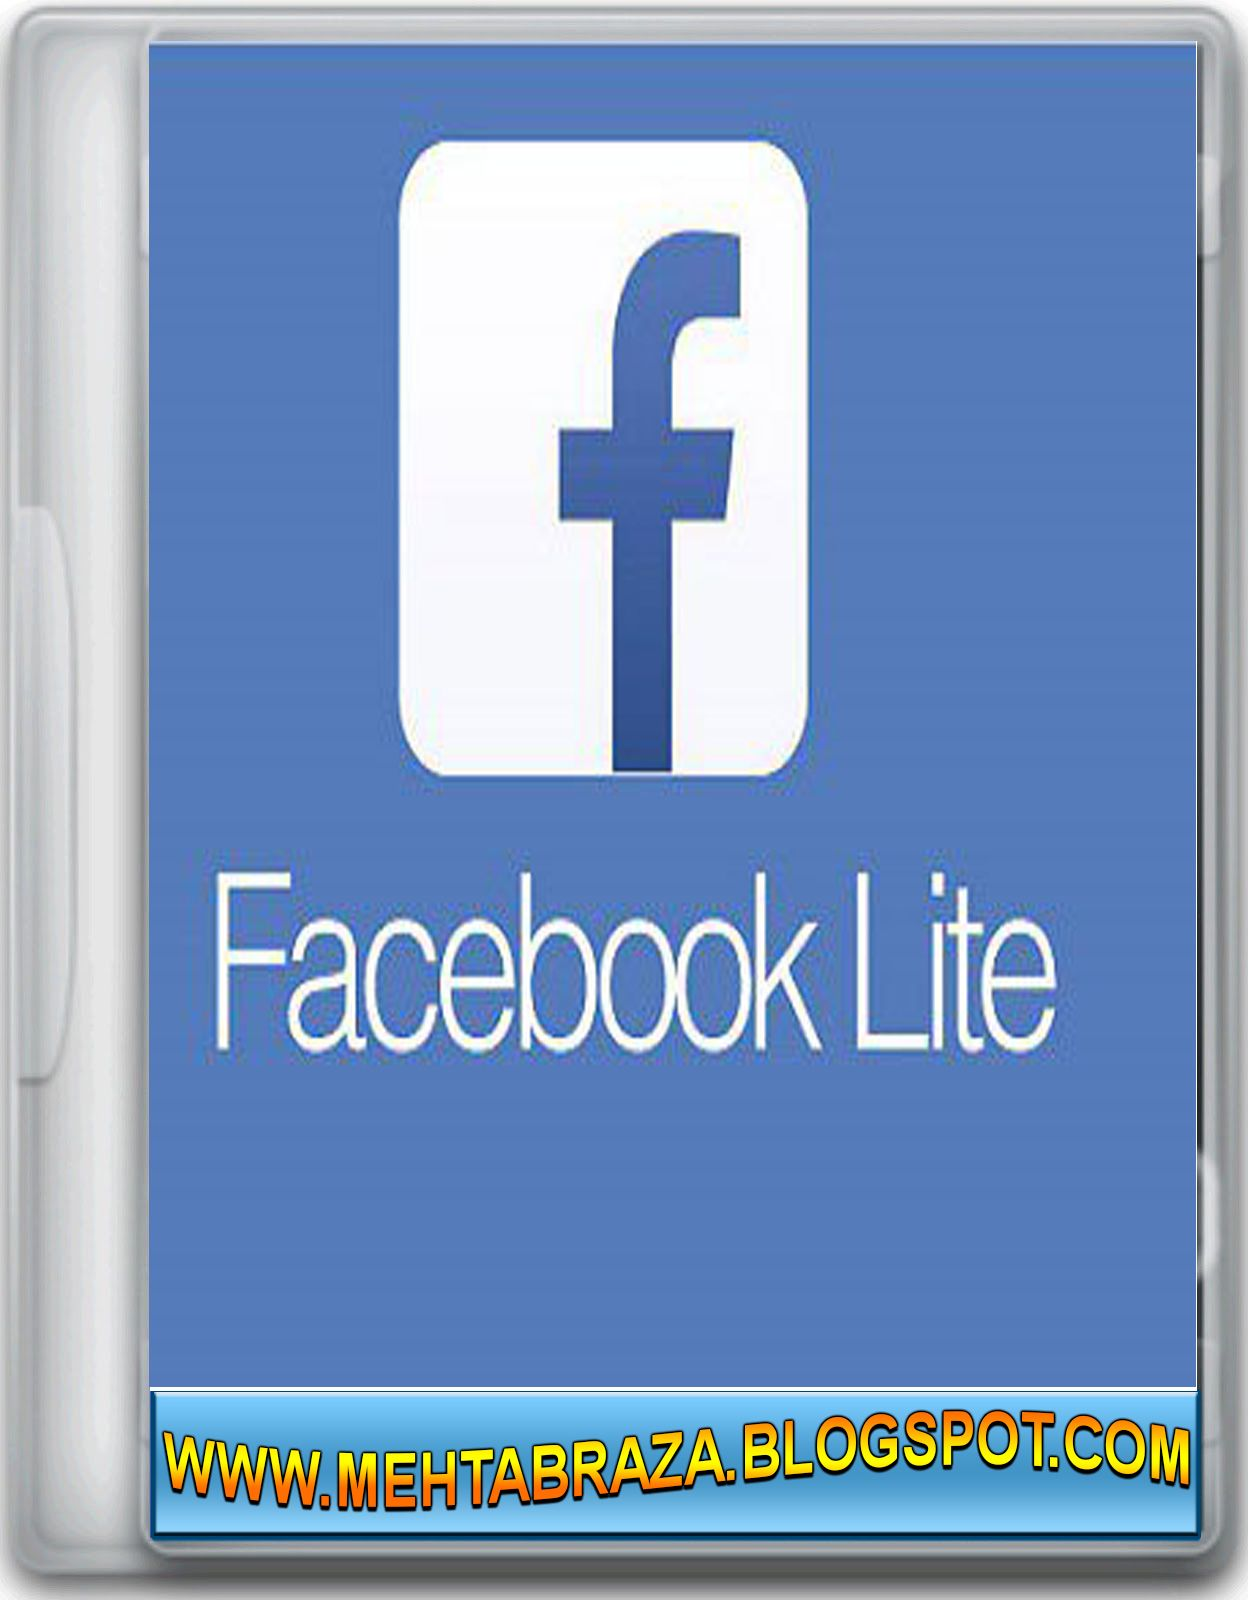 facebook lite app download